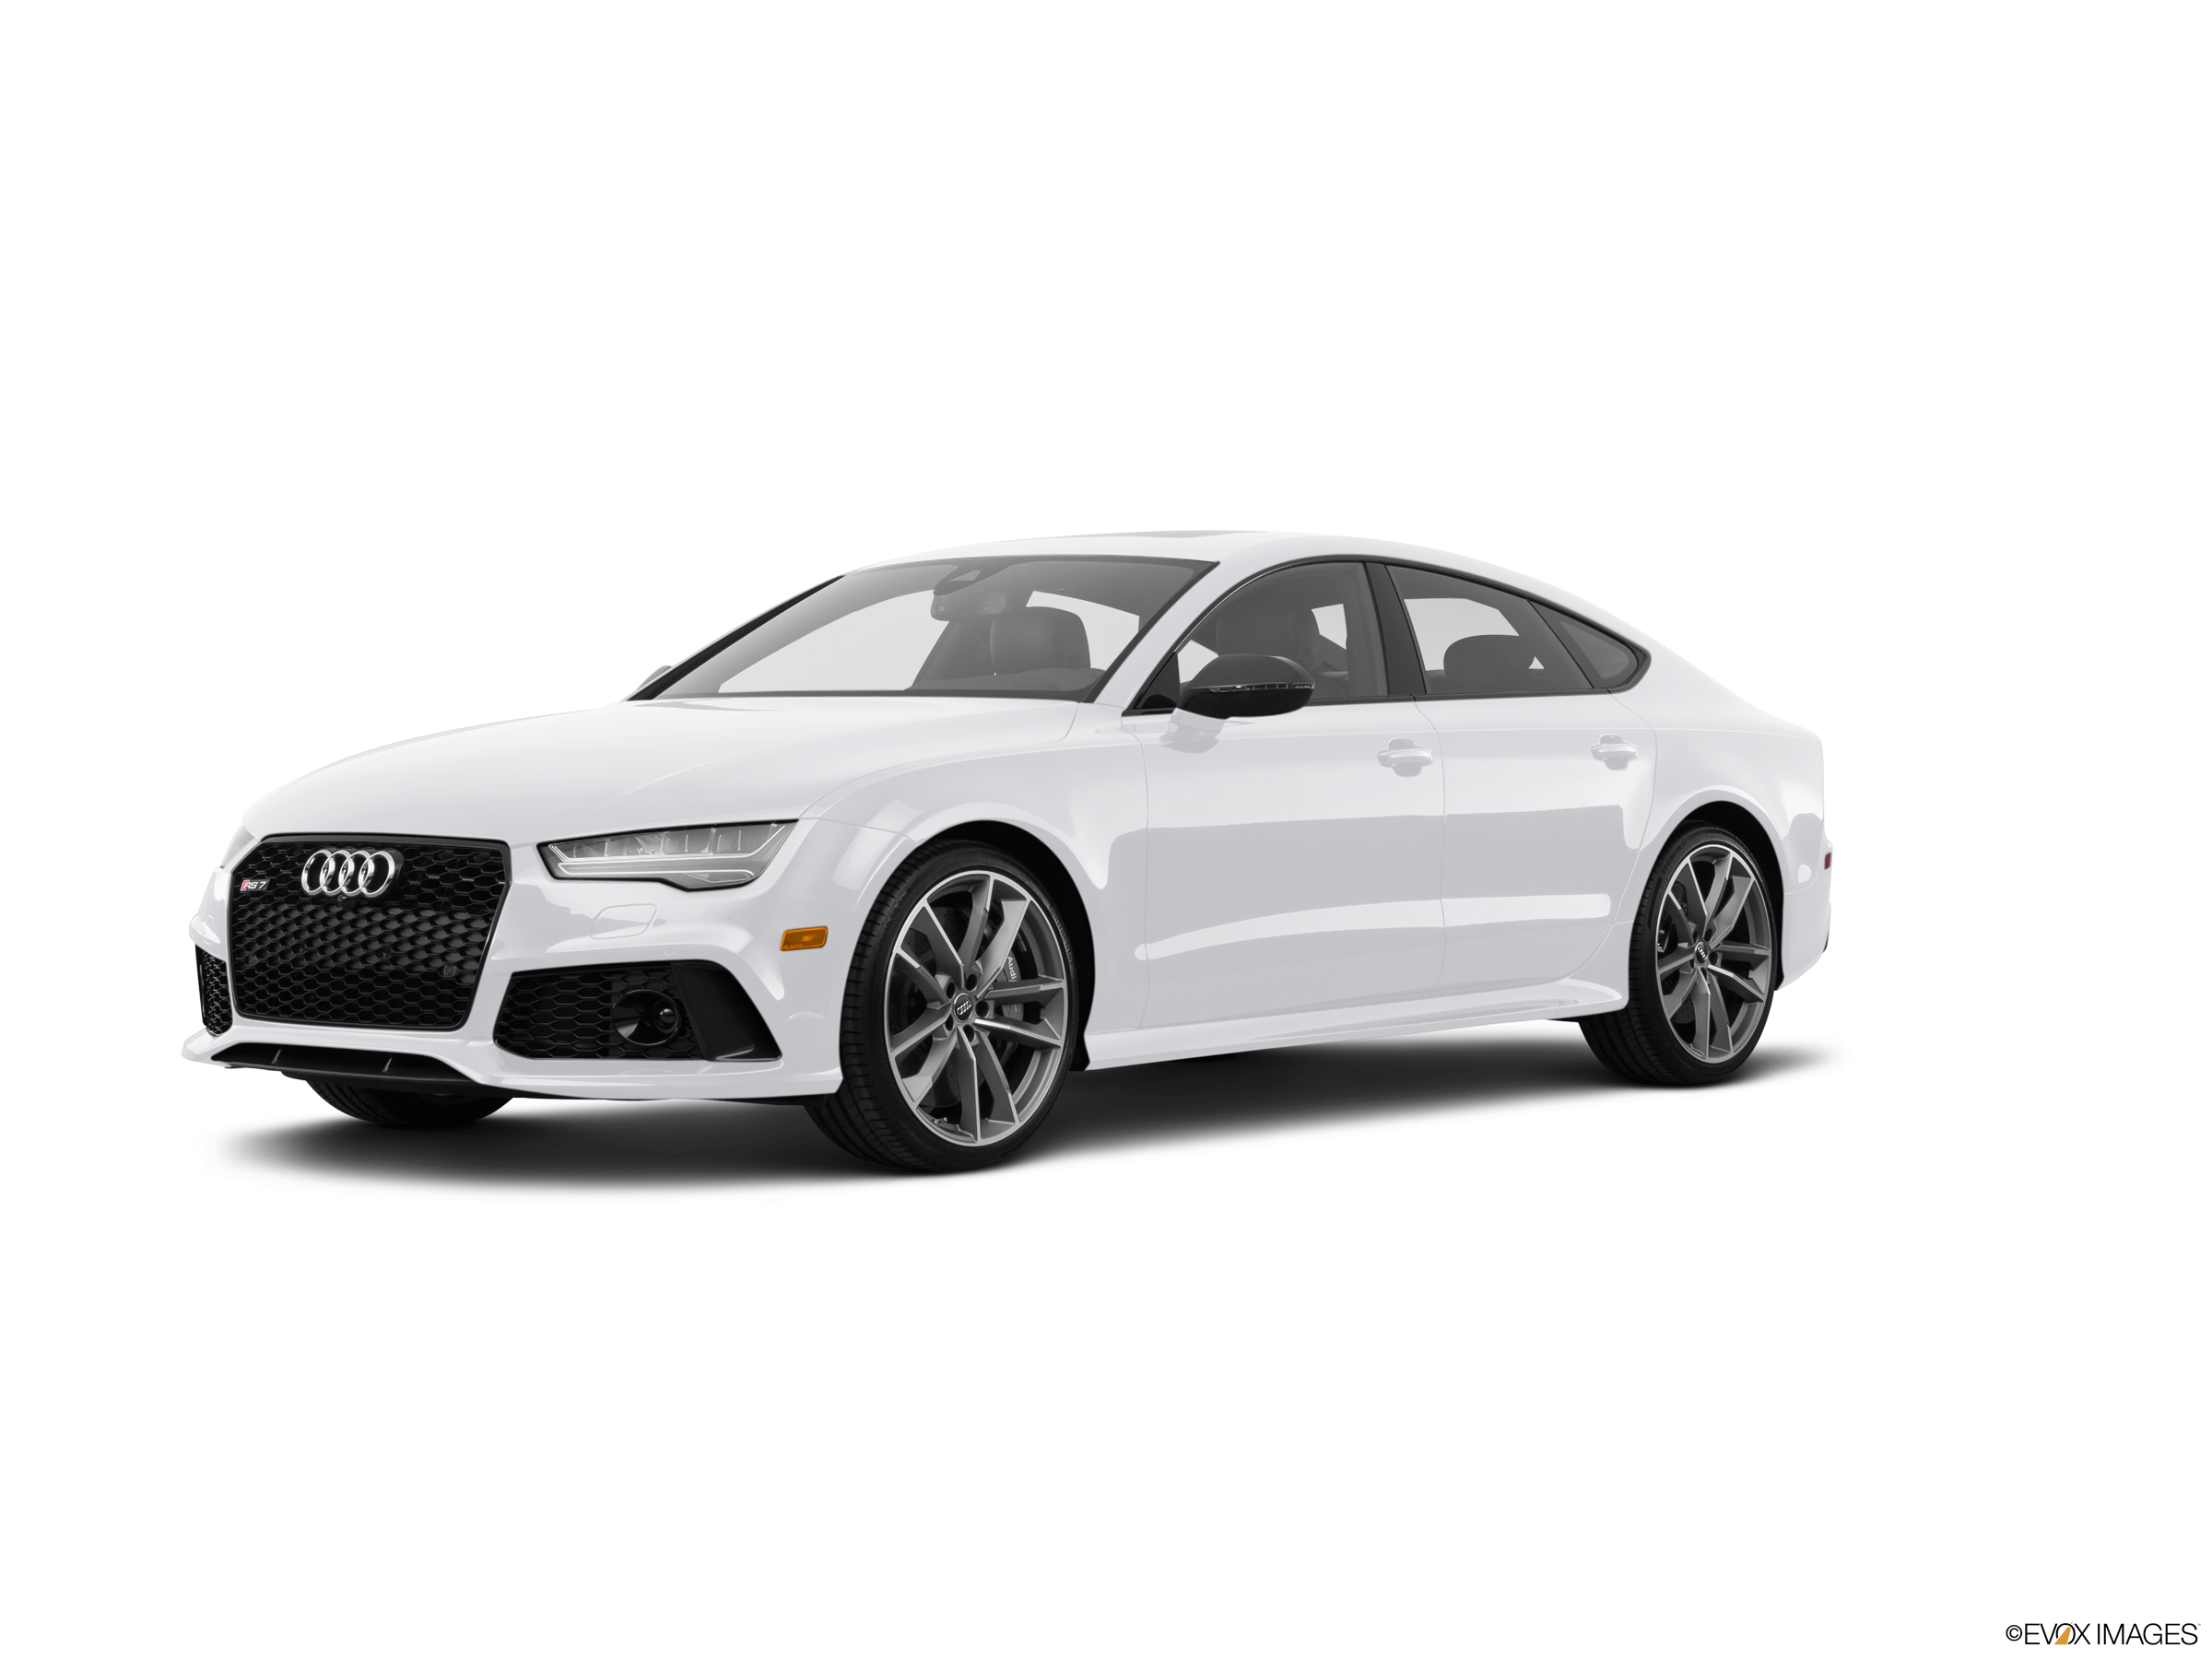 Highest Horsepower Hatchbacks of 2018 - 2018 Audi RS 7